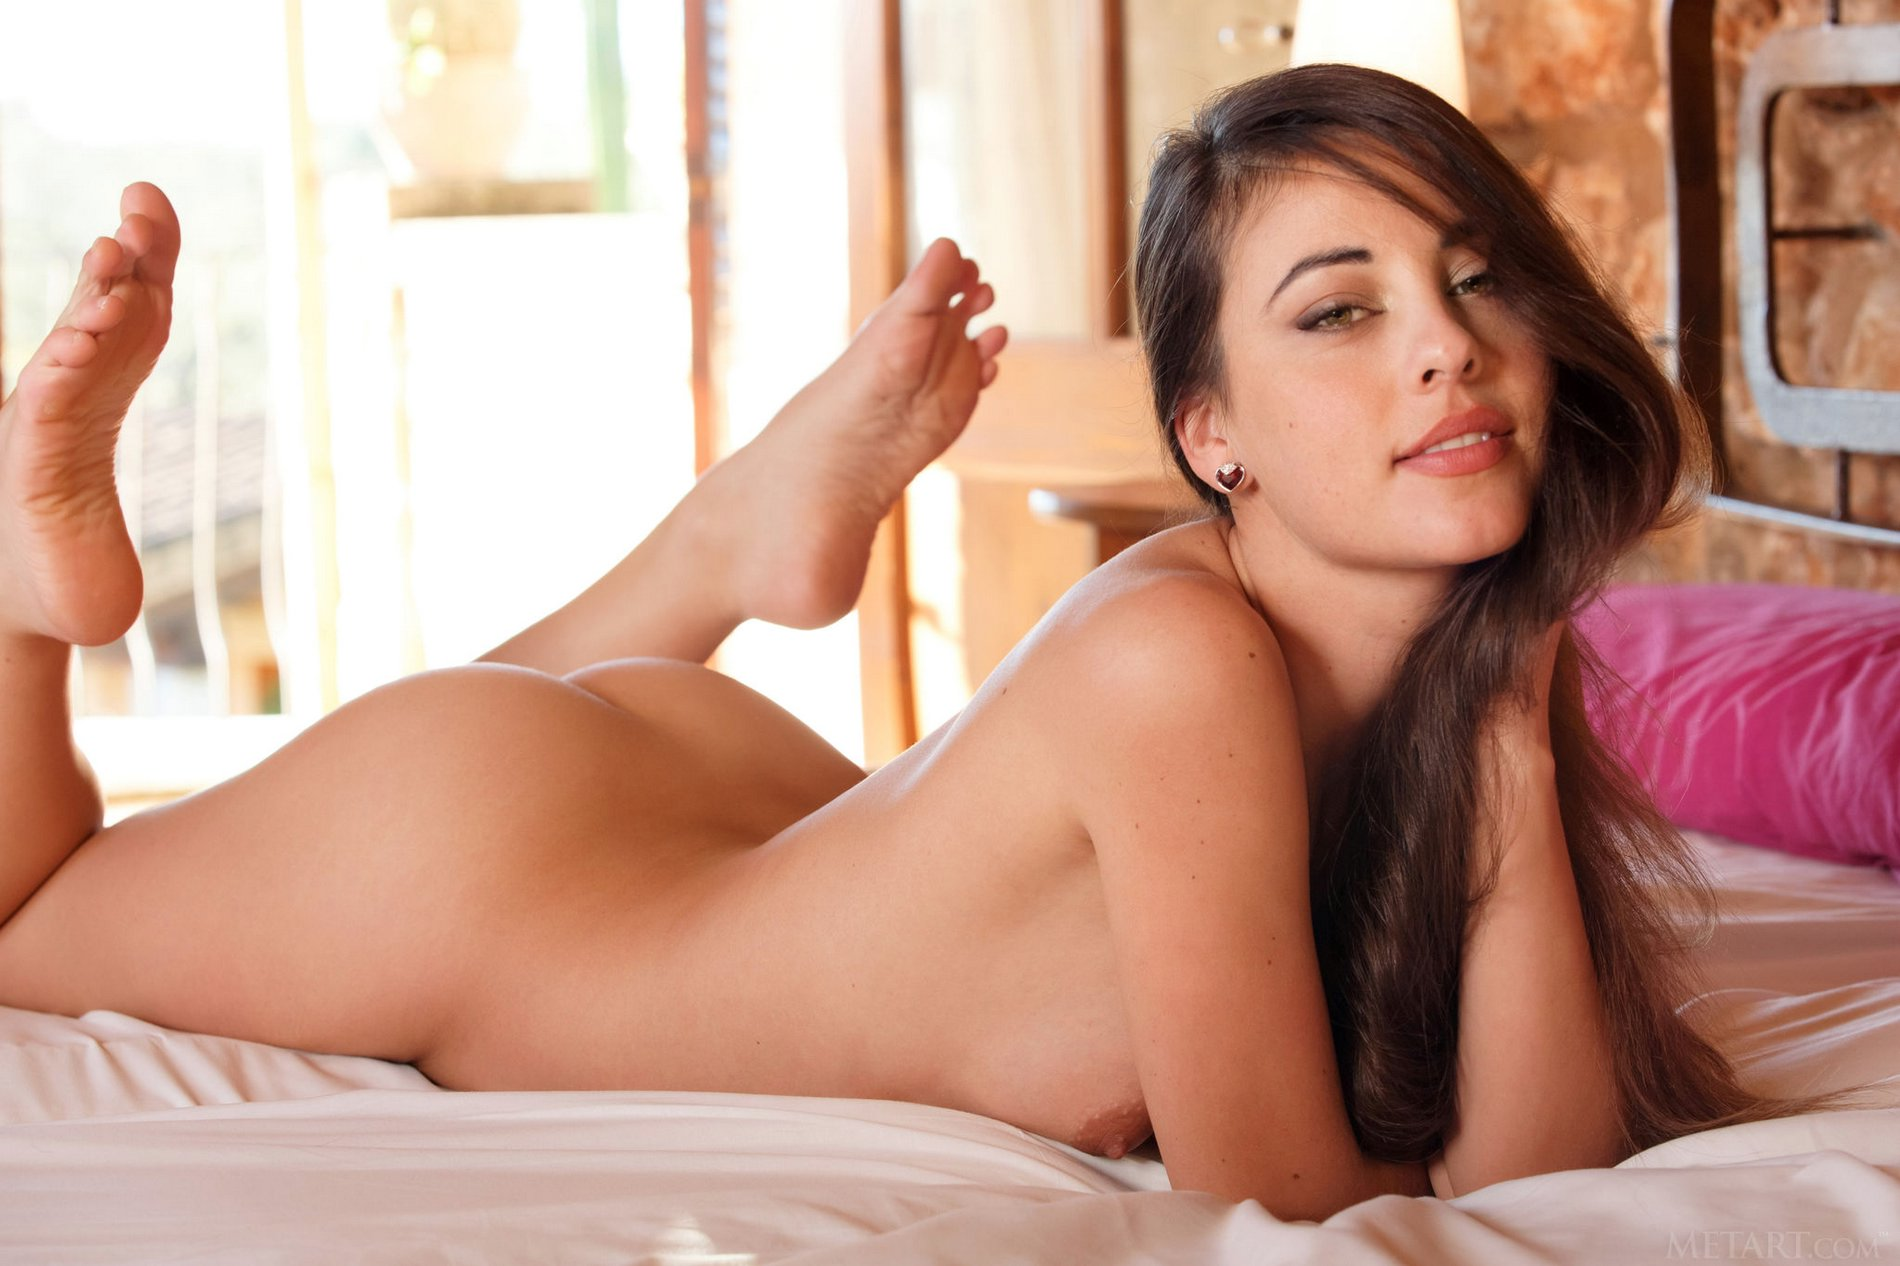 Lorena herrera porn star the